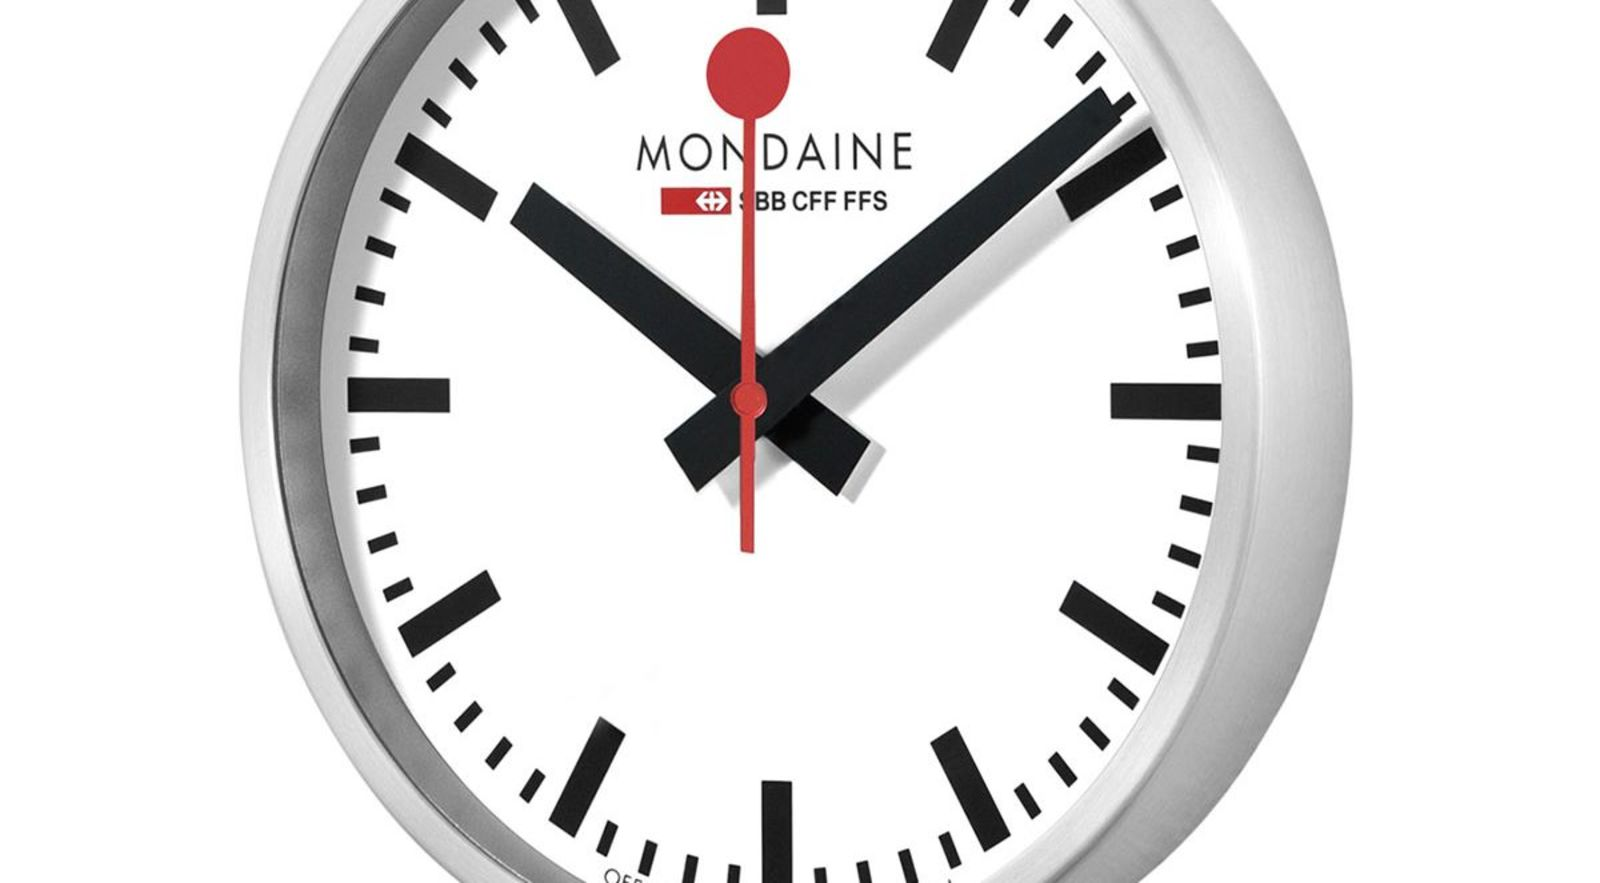 Mondaine Stop 2 Go Smart Wall Clock